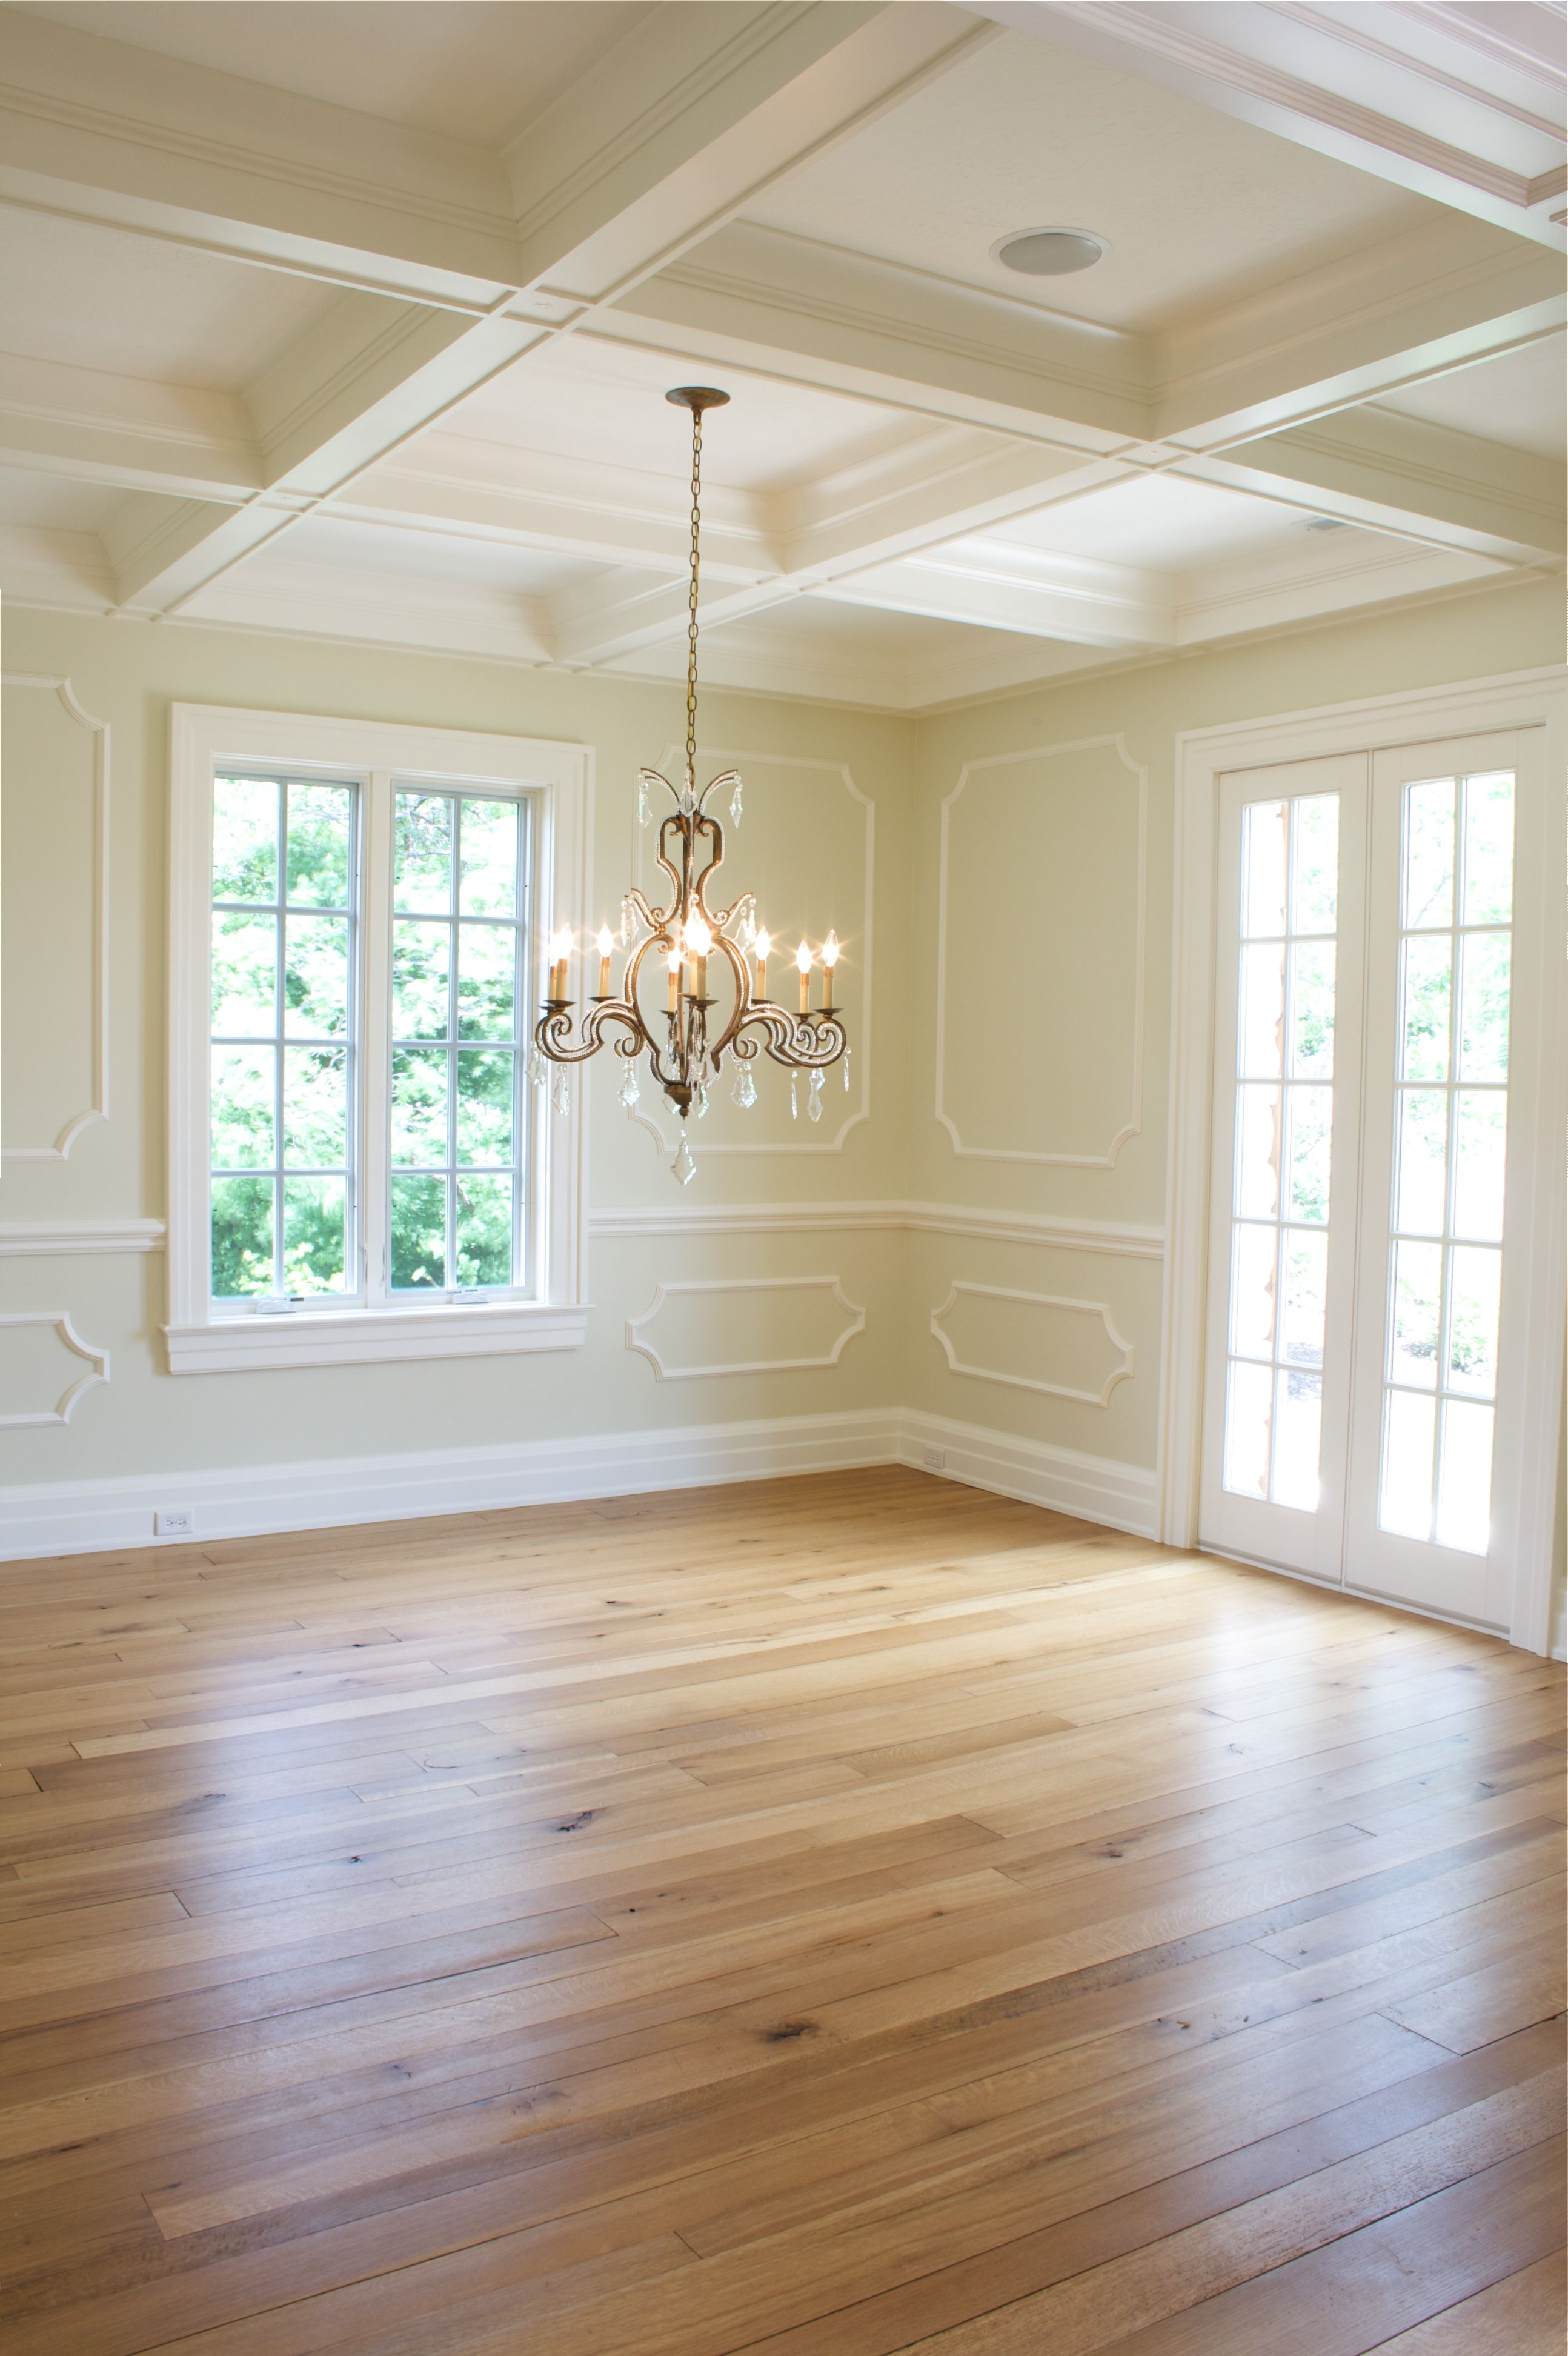 Light Wood Paneling: Applied Moulding For Wainscot. Coffered